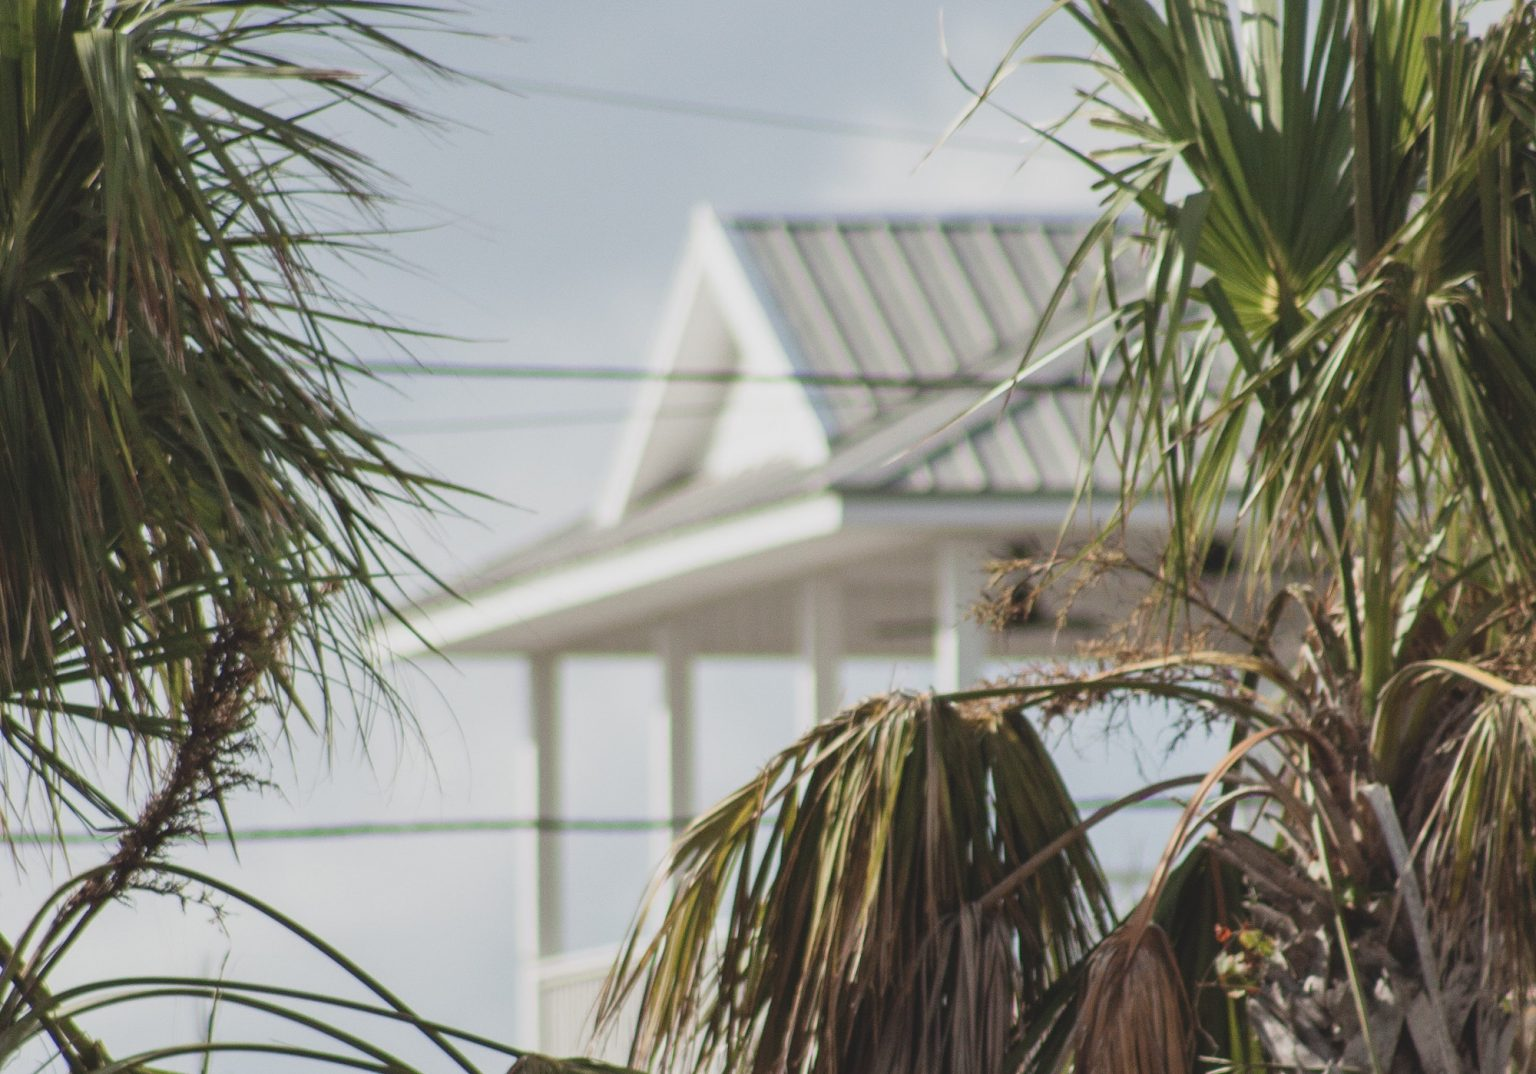 A picture of a house in the background with palm trees in the foreground, indicating that the house is built in Florida.